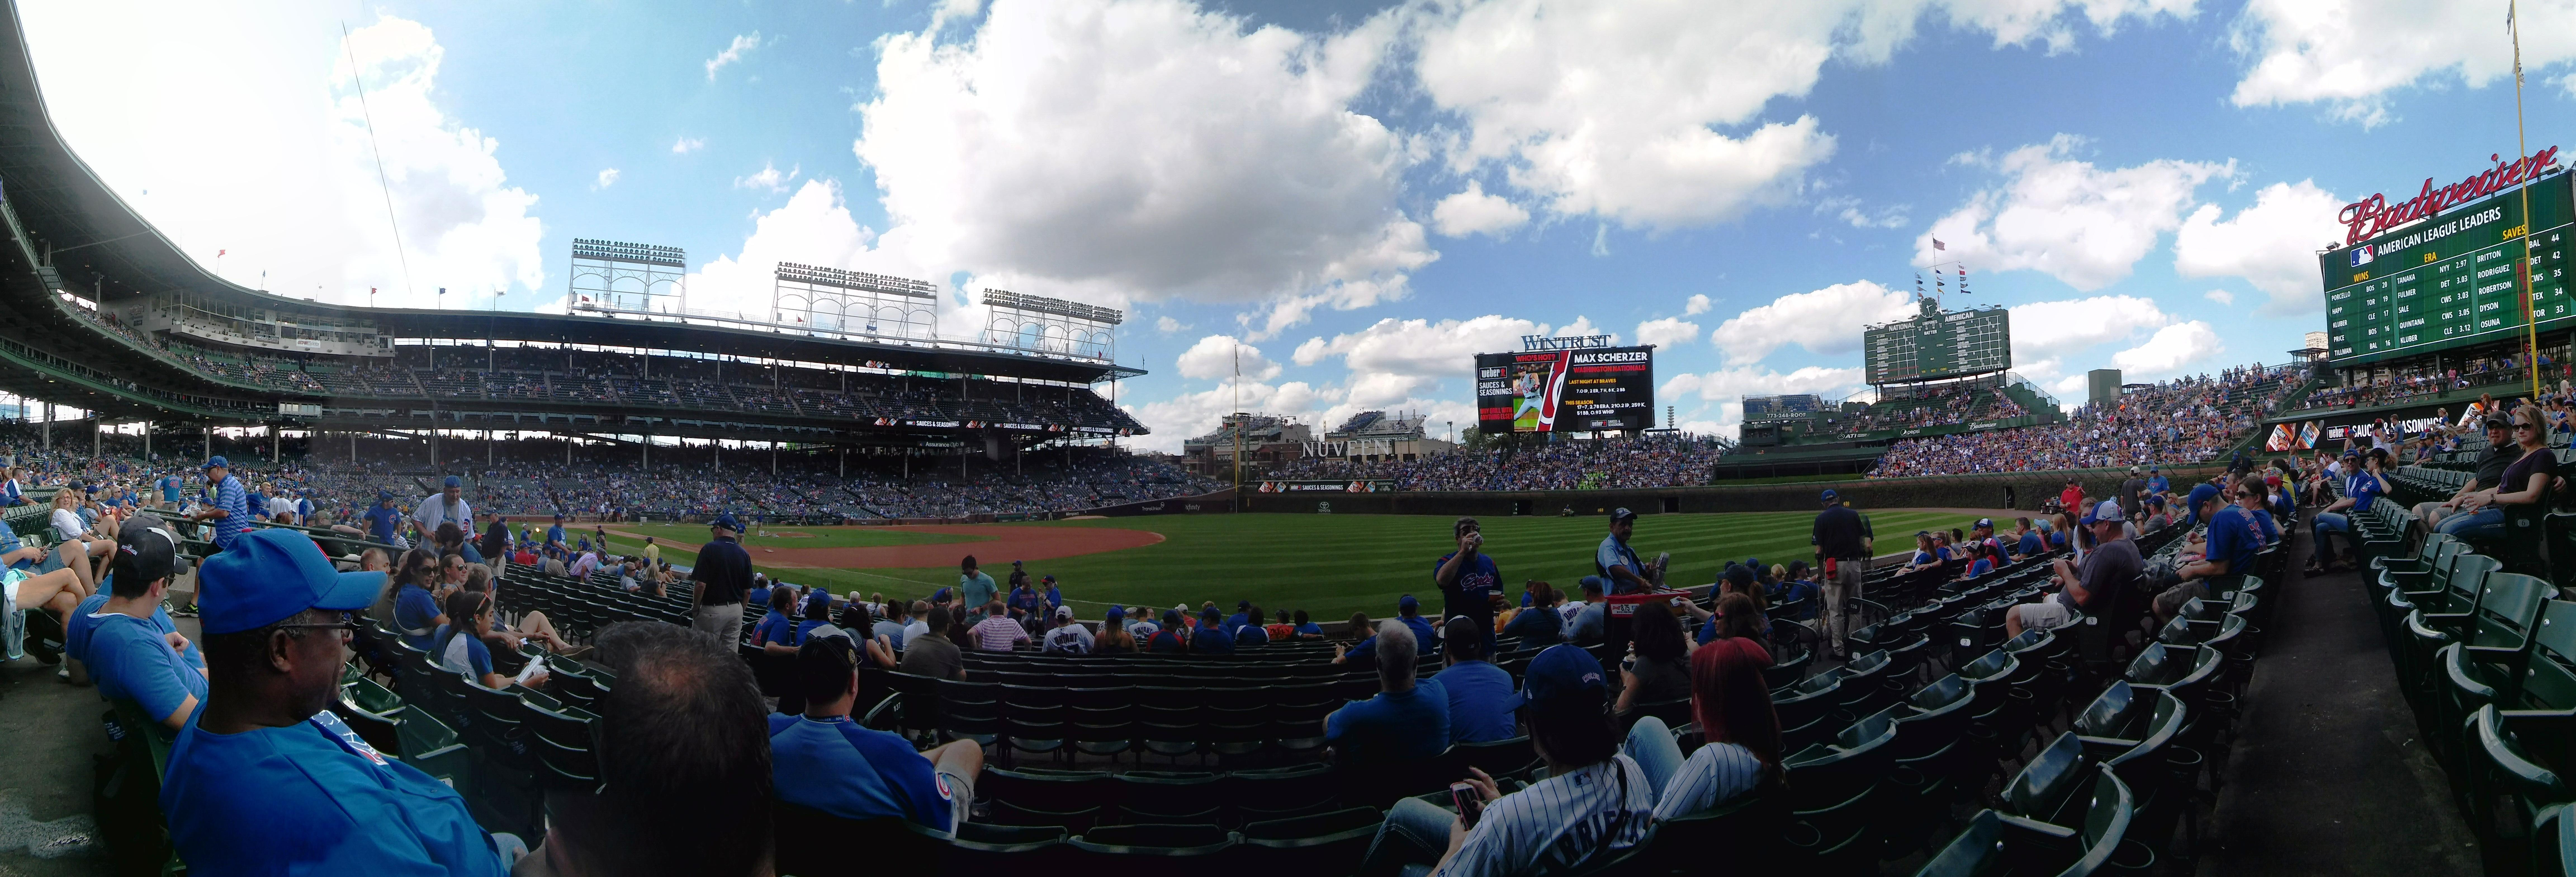 Wrigley Field Section 130 Row 5 Seat 4